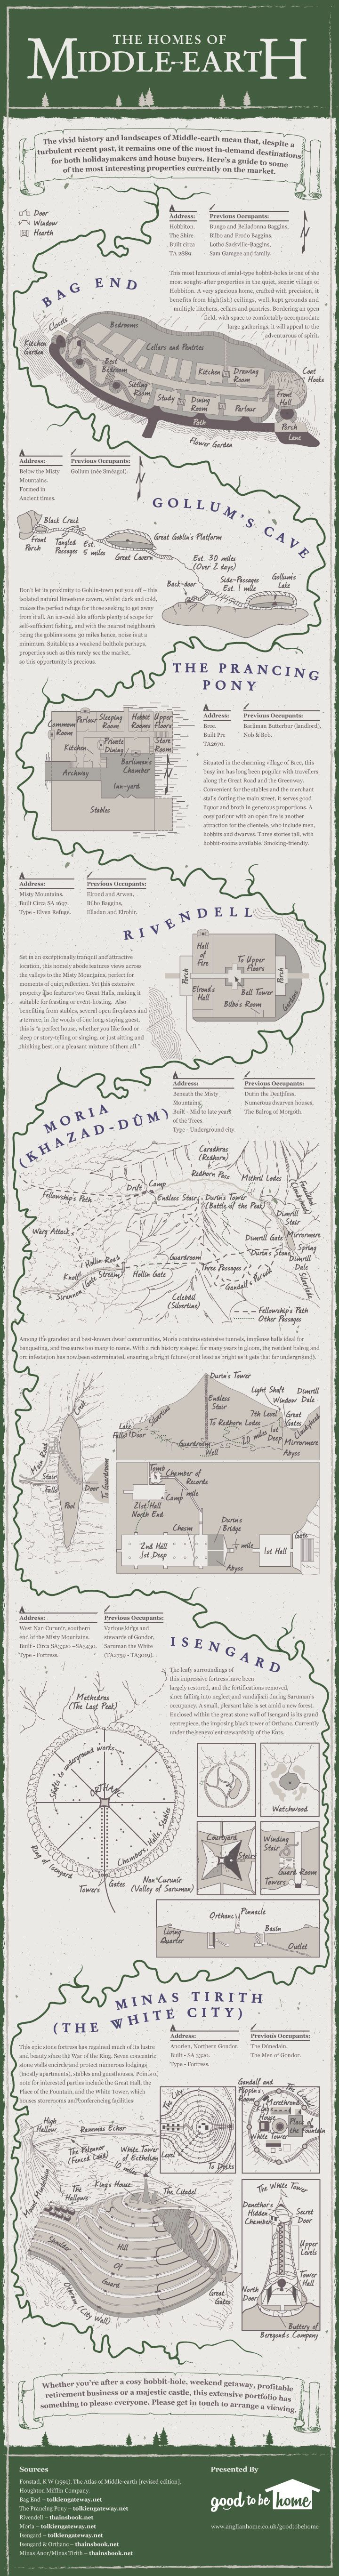 The Homes of Middle Earth #infographic #RealEstate #Homes